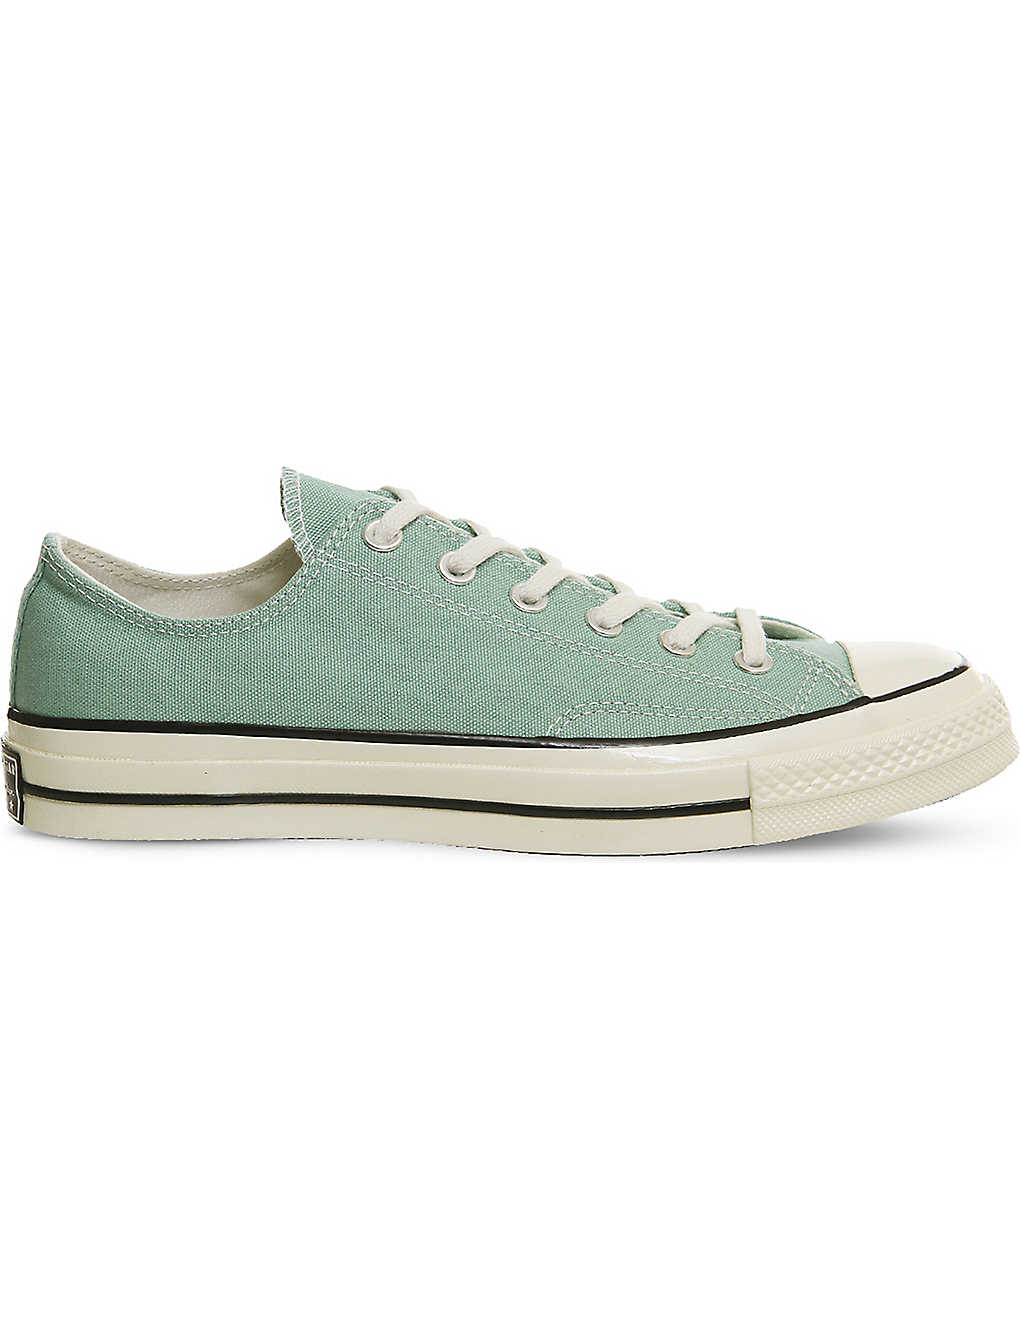 883b0f6aee5a CONVERSE - All Star OX 70s canvas trainers